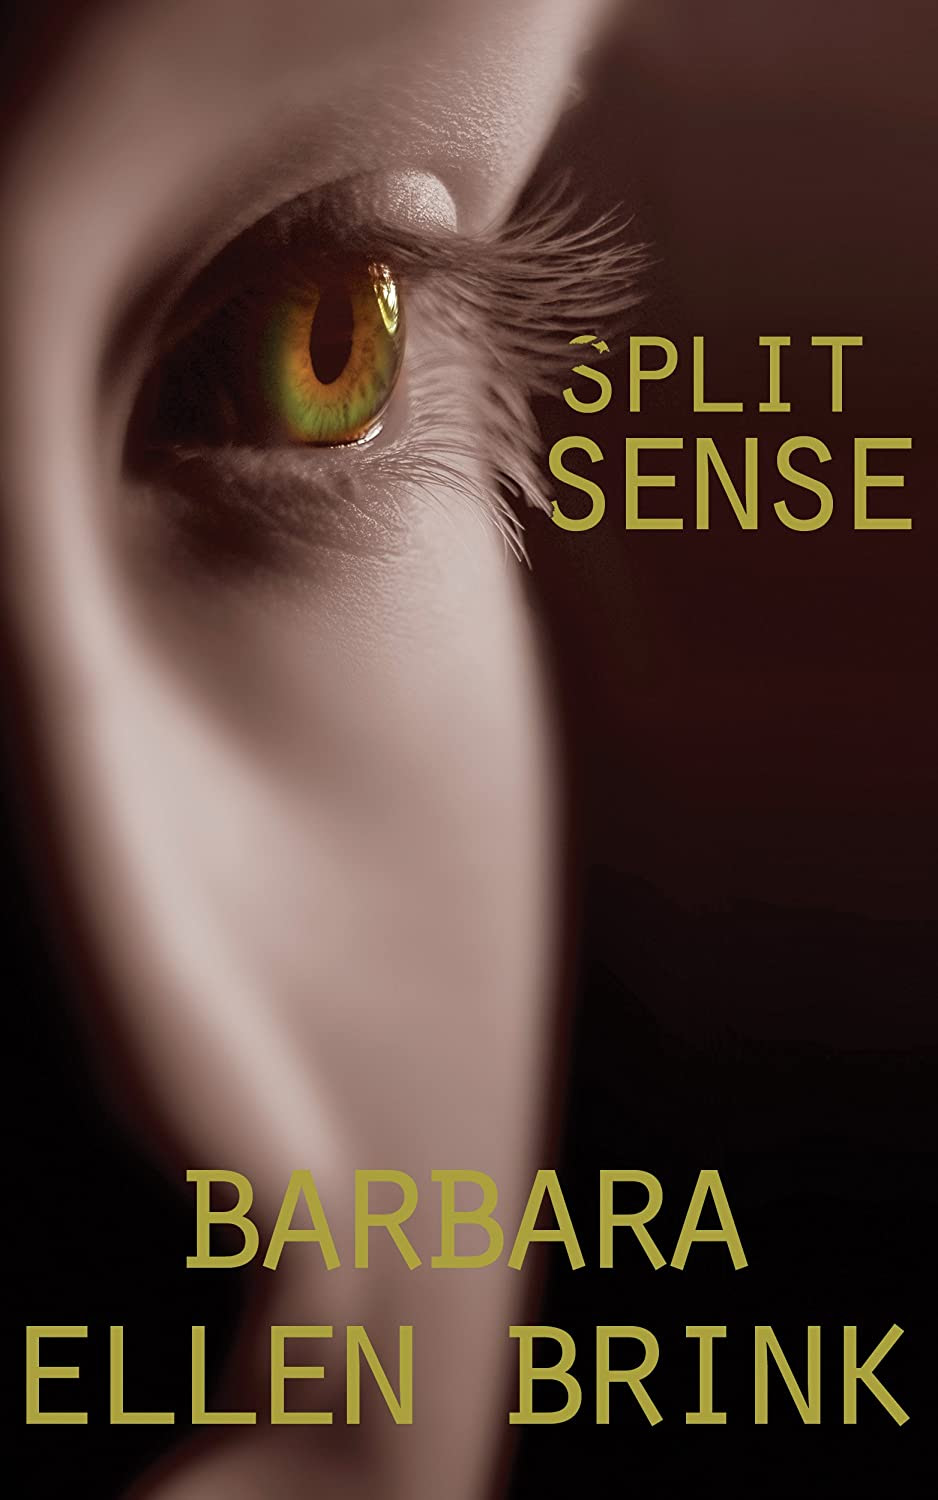 http://www.amazon.com/Split-Sense-Barbara-Ellen-Brink-ebook/dp/B006BHXDKA/ref=sr_1_1?s=books&ie=UTF8&qid=1388672230&sr=1-1&keywords=split+sense